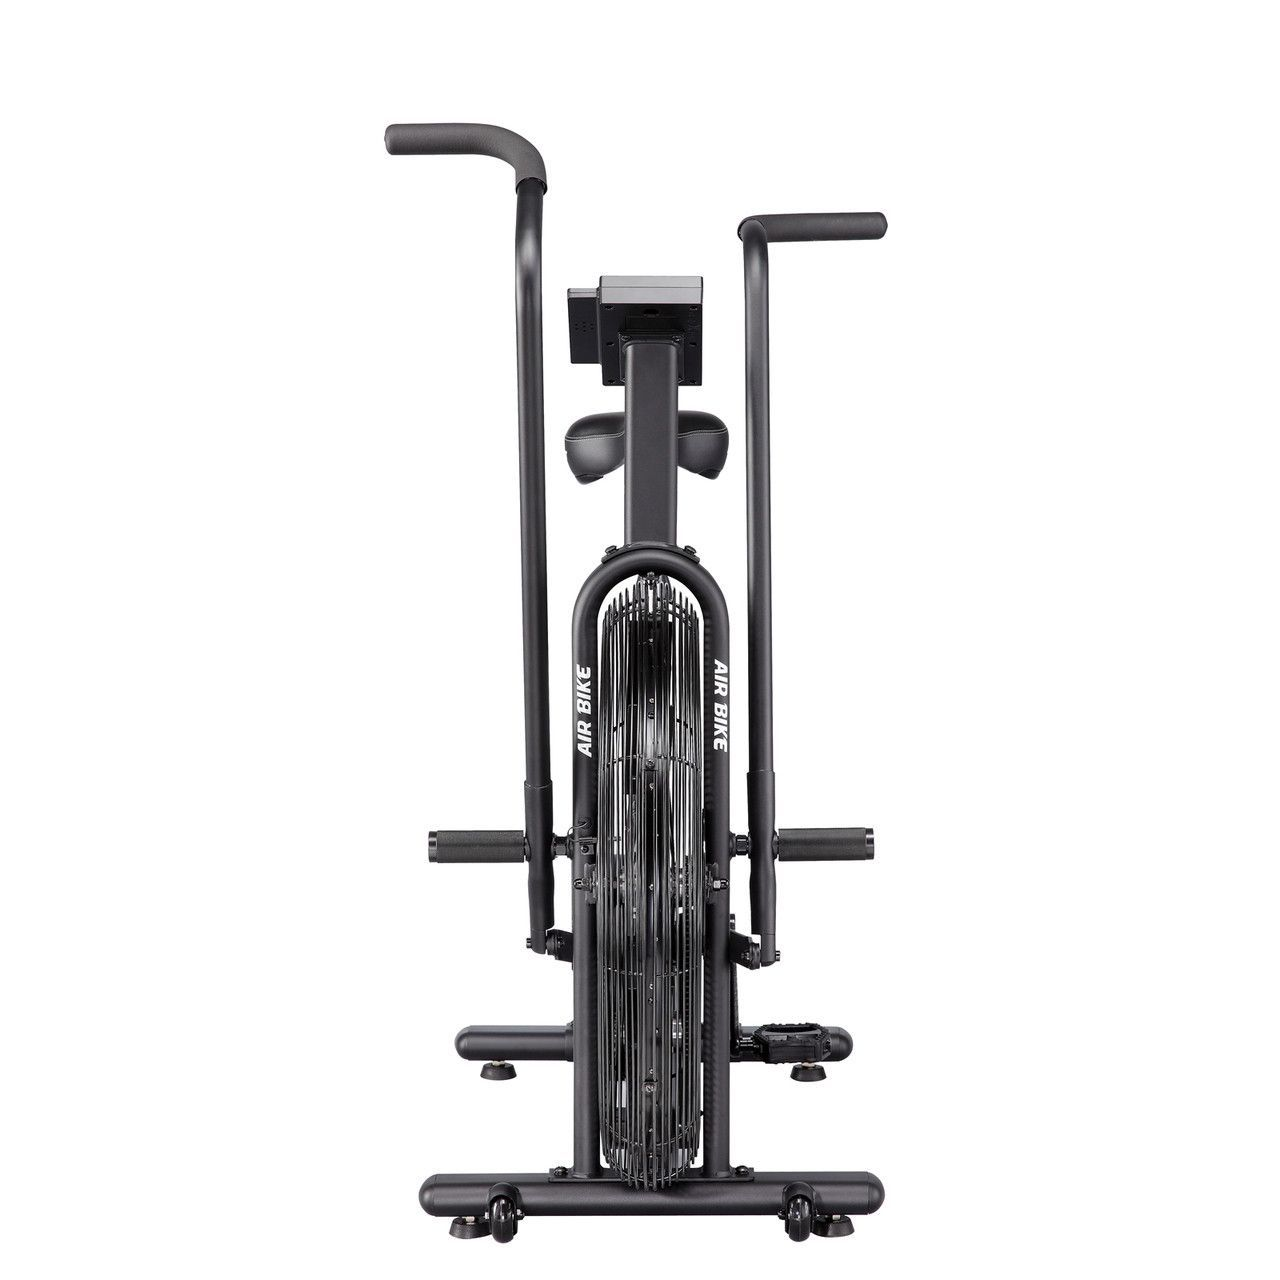 Assault Airbike At Home Gym No Equipment Workout Cardio Equipment